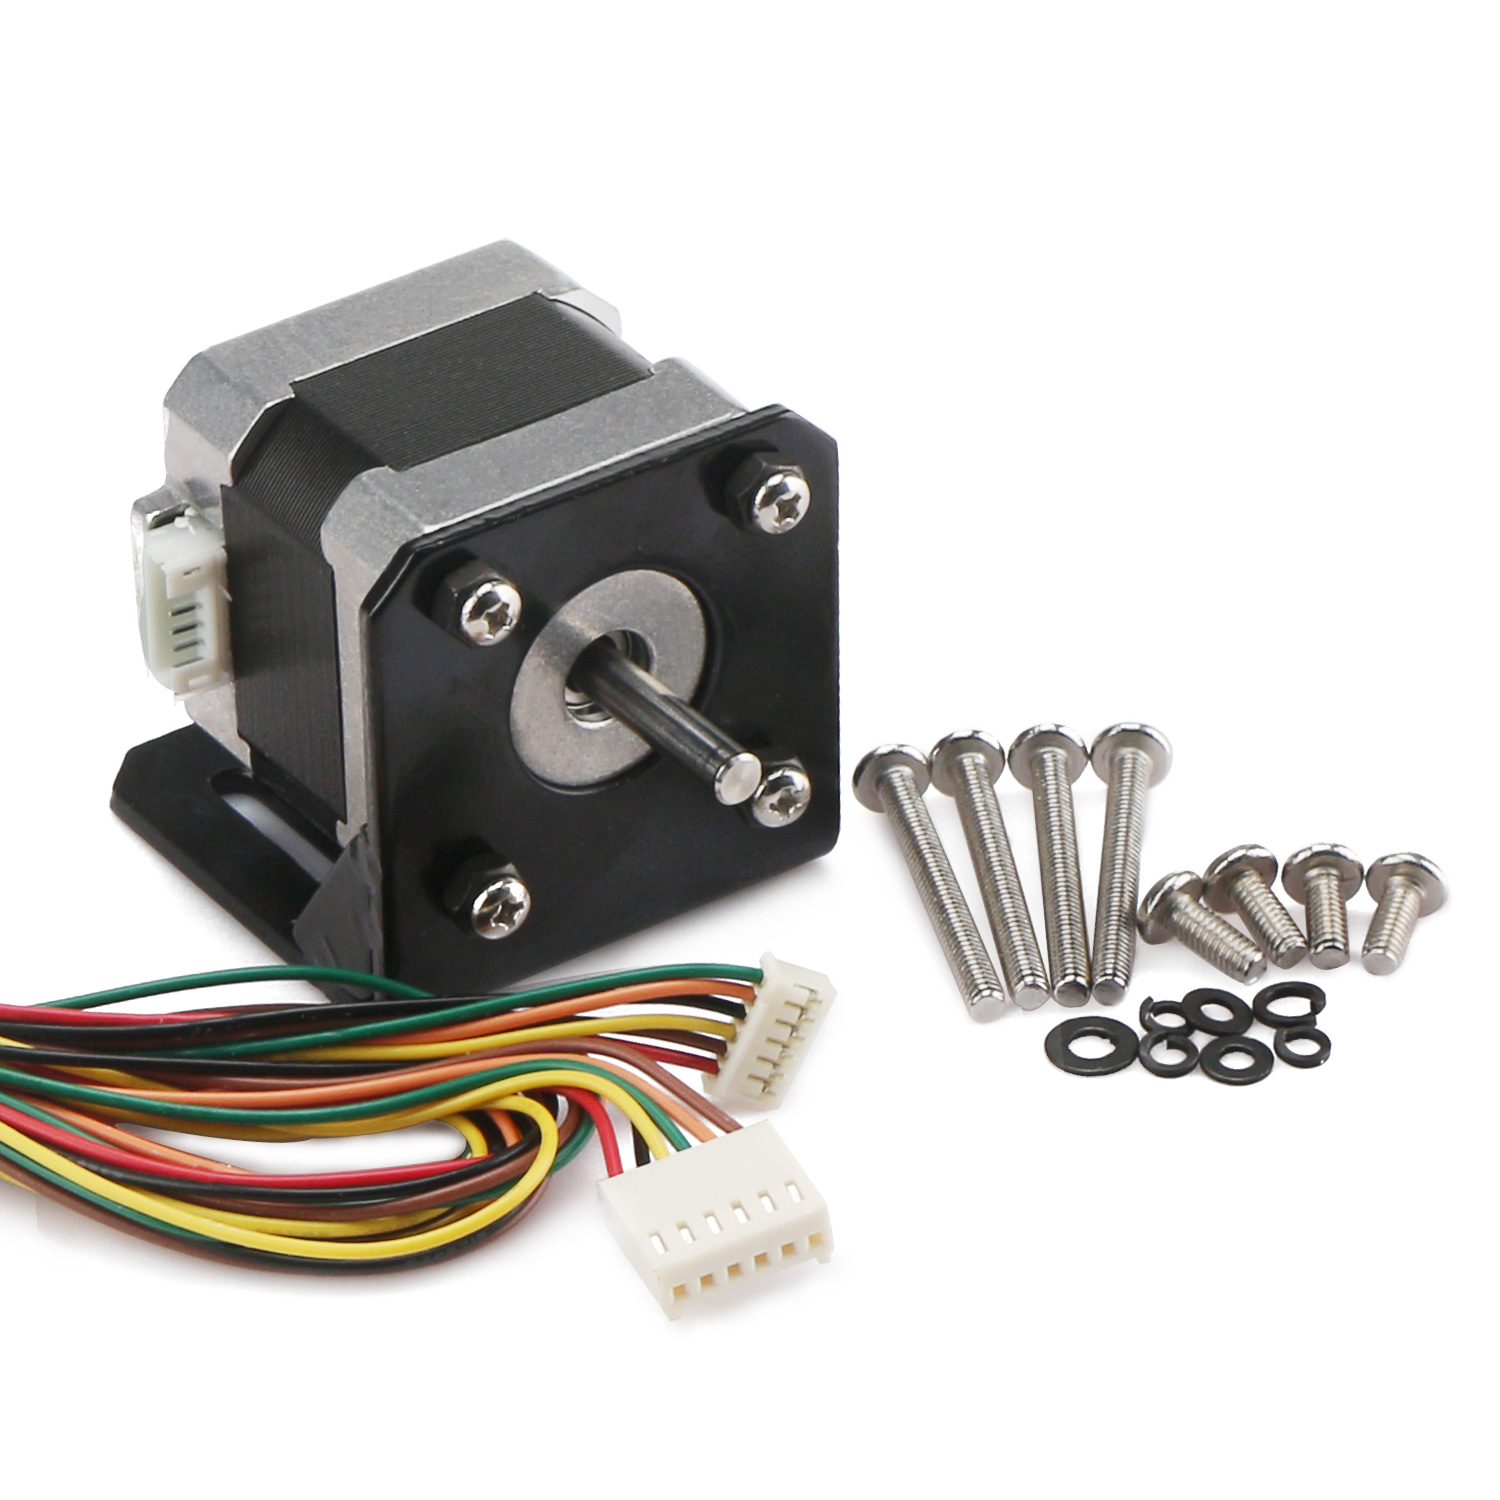 Stepper Motor 2 Phrase 42 Hybrid Dc 10 36v Mini 4 Wire Wiring Harness Kit For